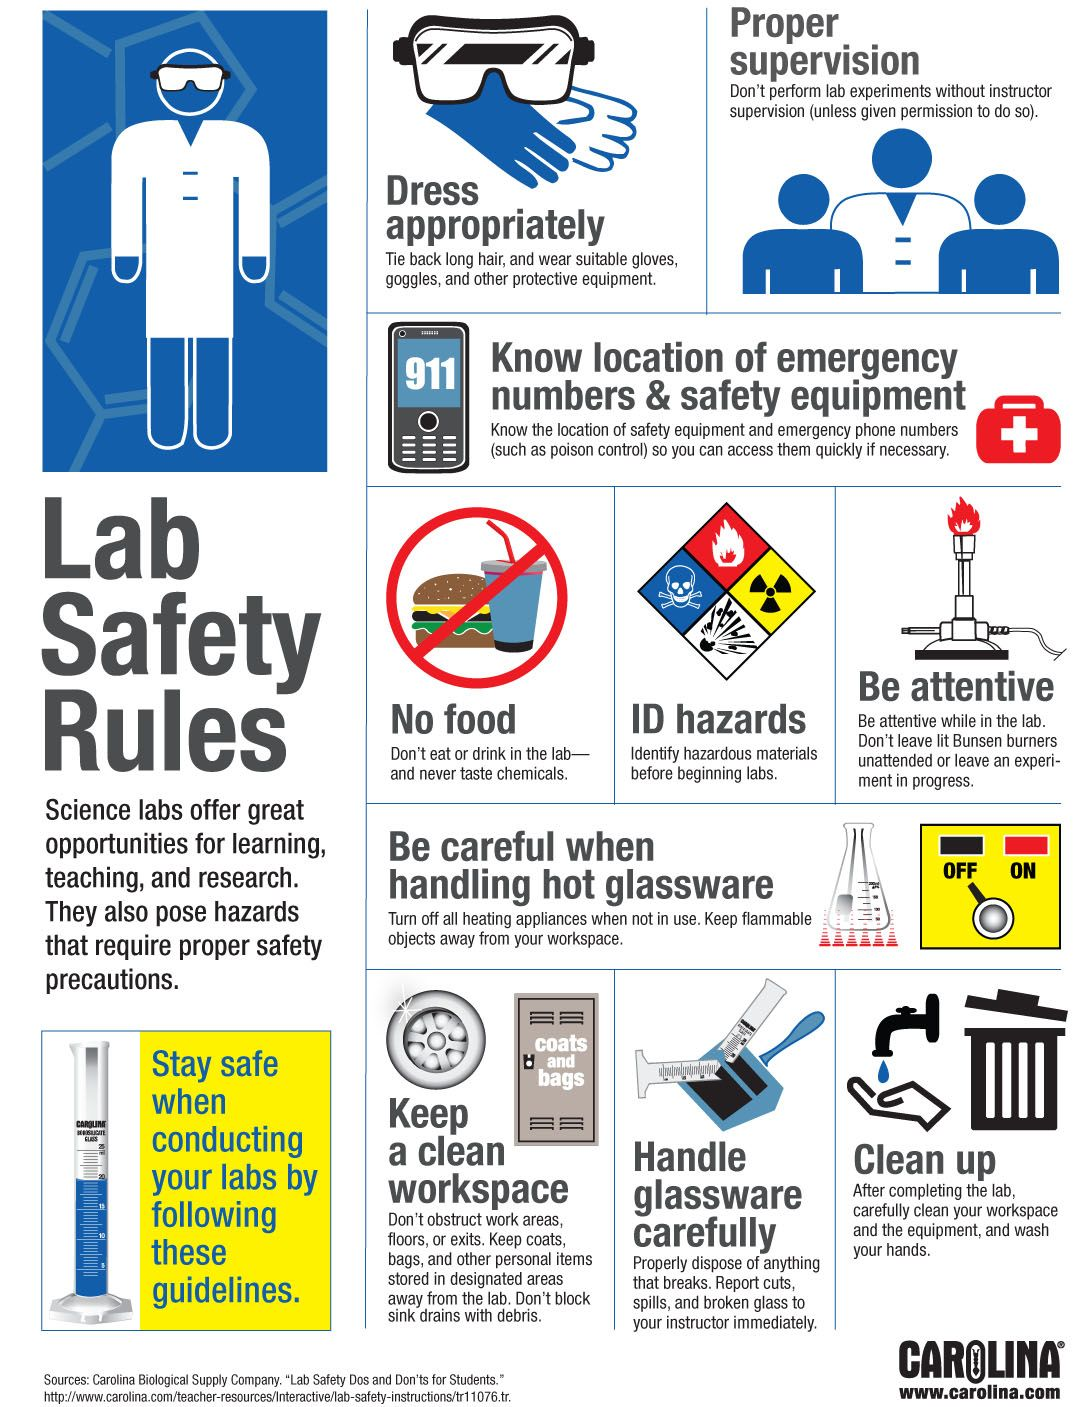 Lab Safety Riles